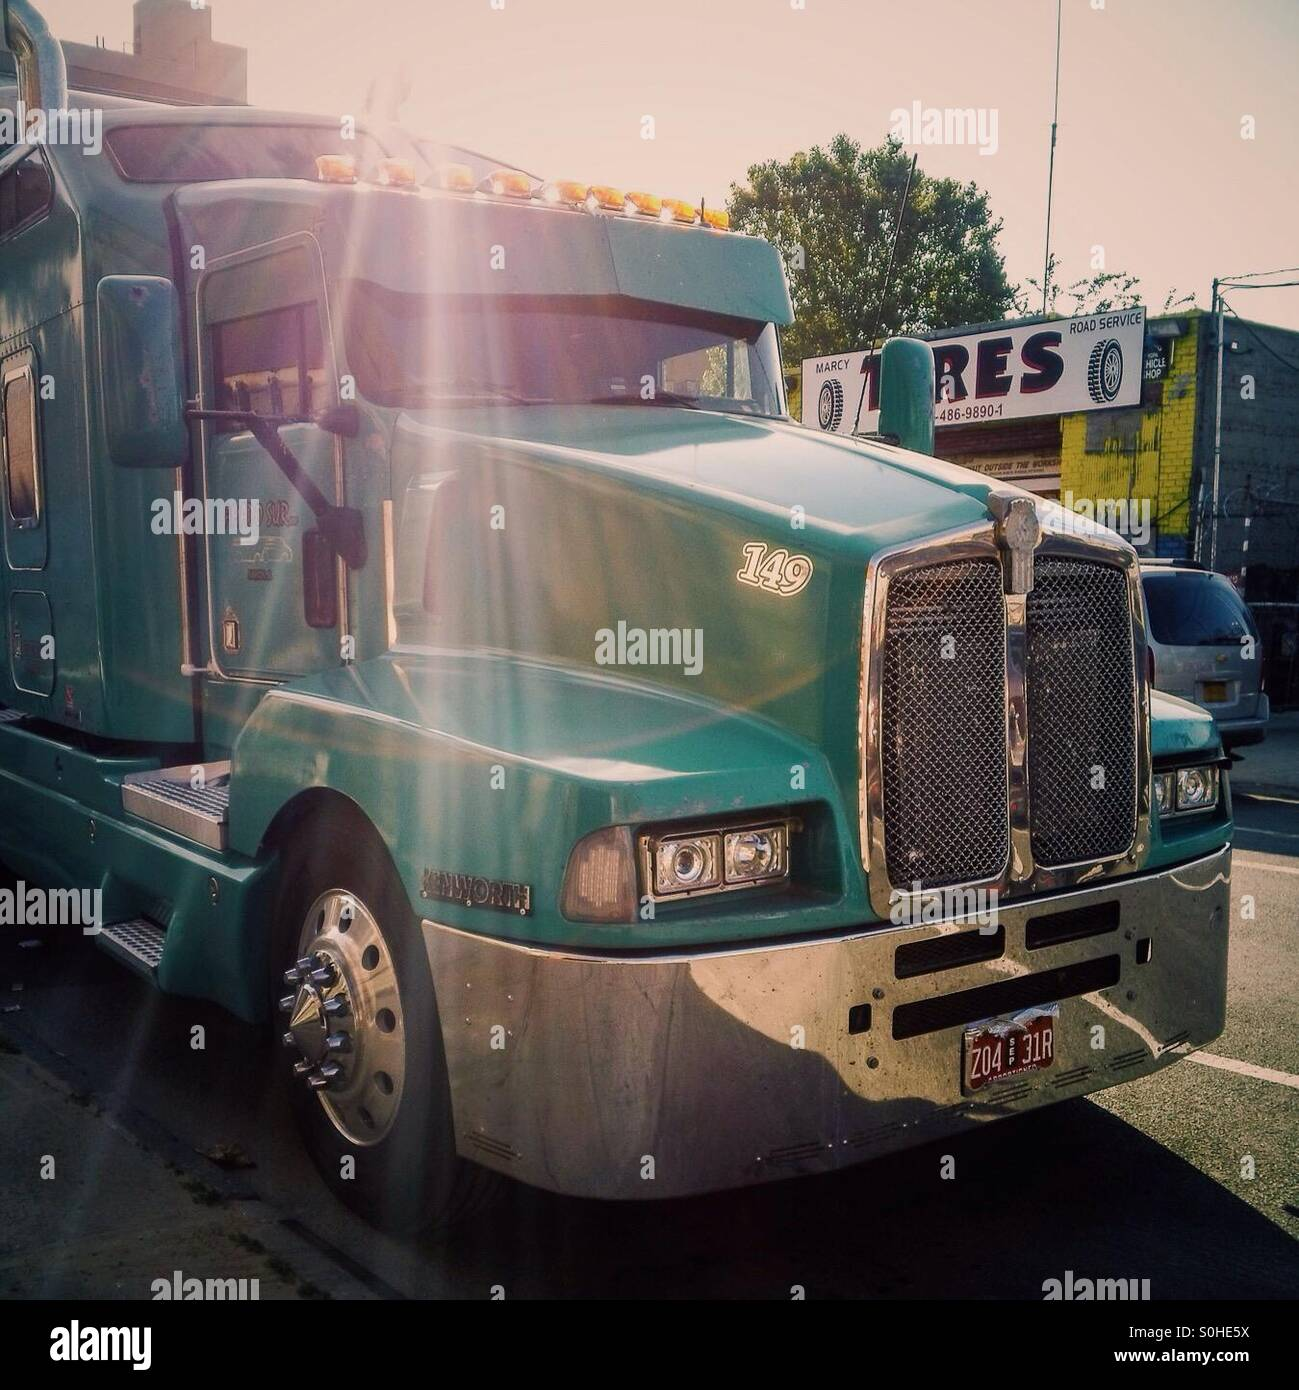 Kenworth Truck parked at a south Williamsburg street in Brooklyn, NY - Stock Image